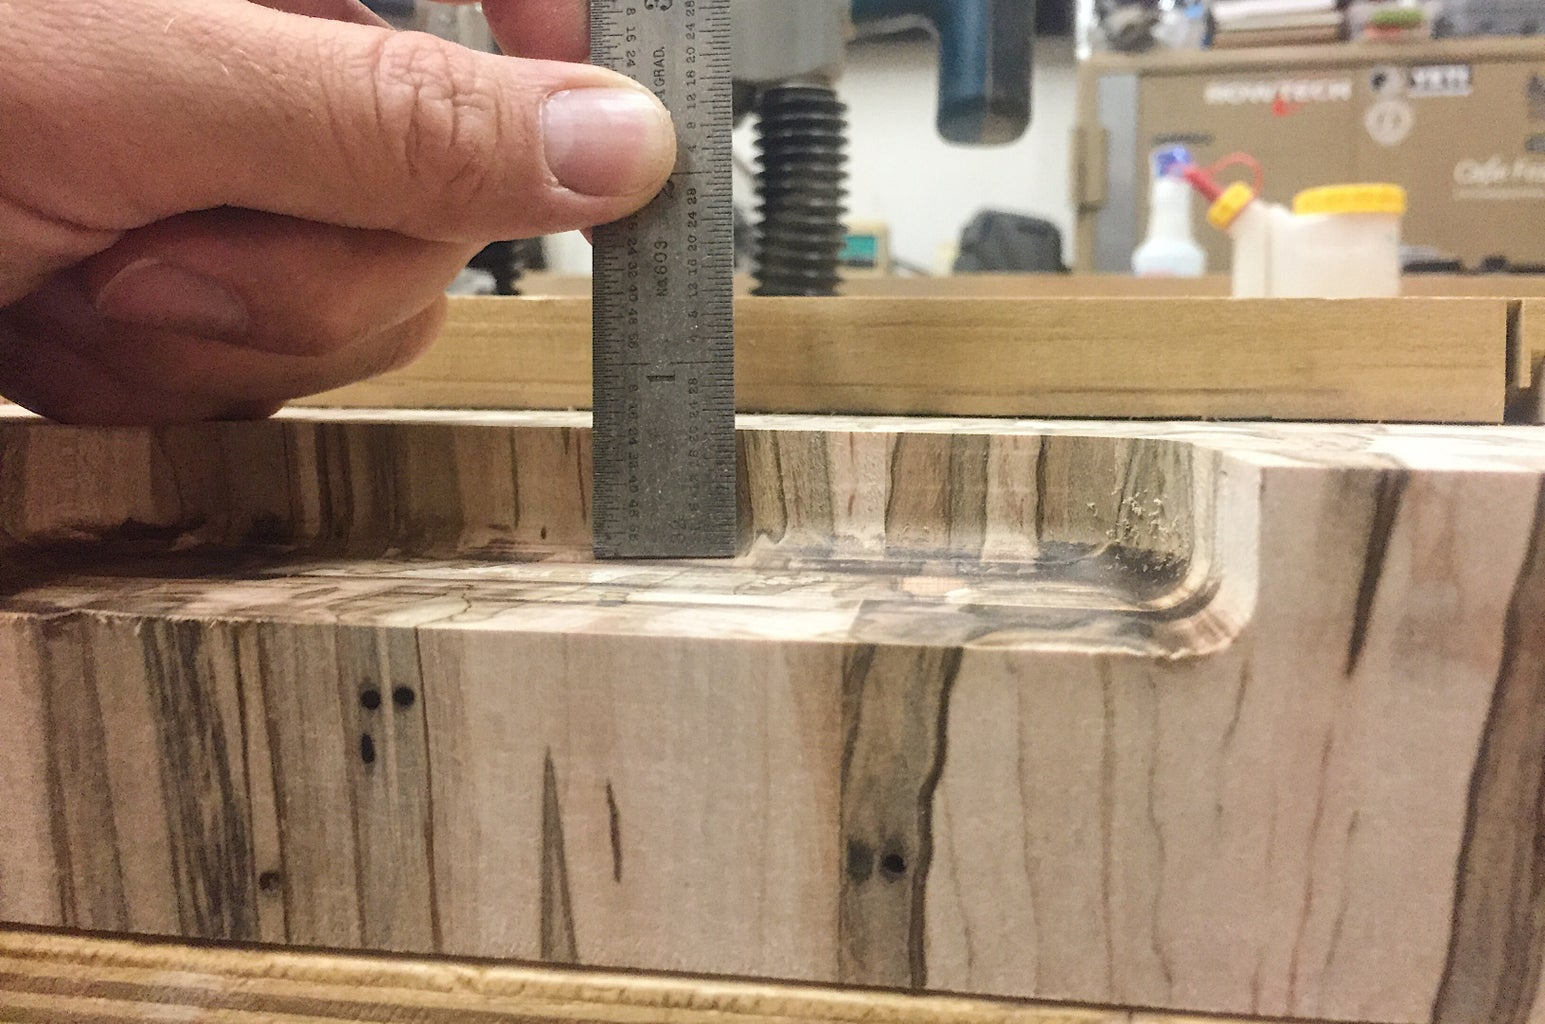 Finish at Desired Depth of Handle